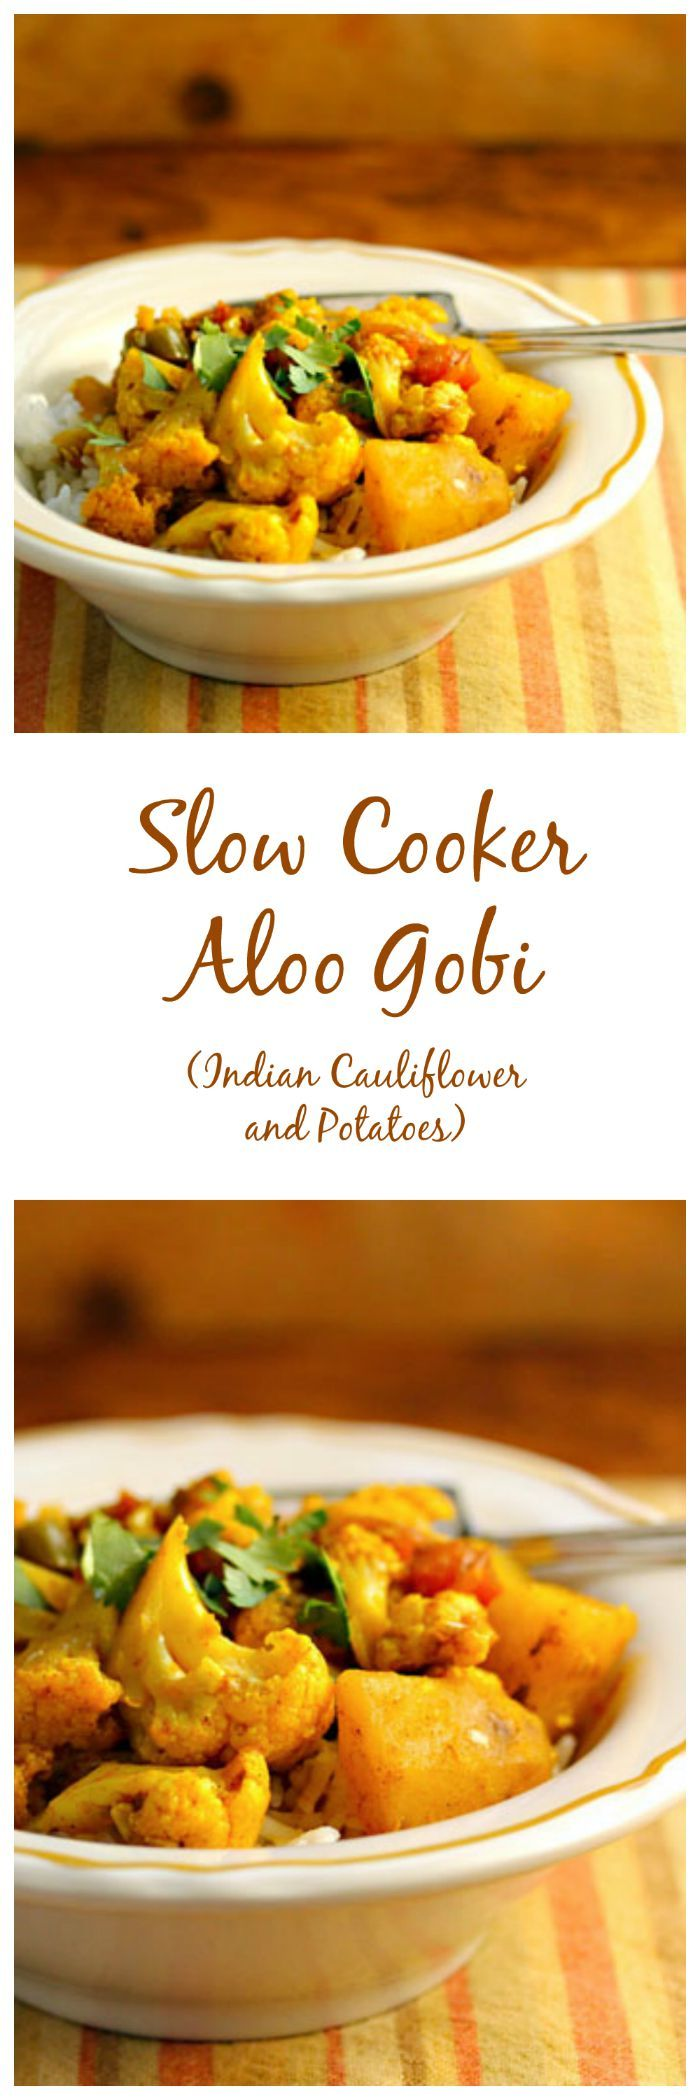 Slow cooker aloo gobi (Indian spiced cauliflower and potatoes), from The Perfect Pantry.